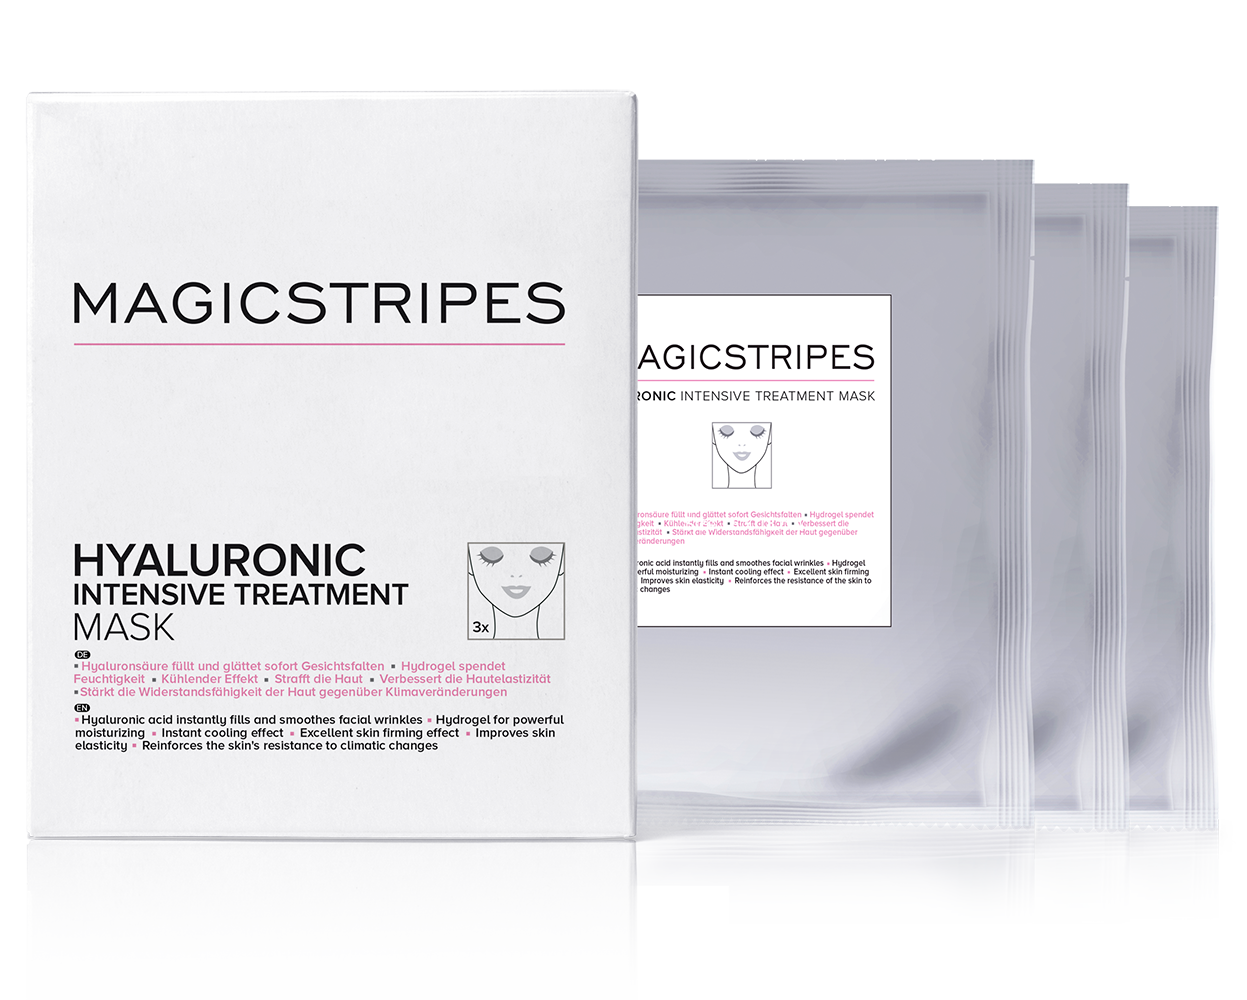 Hyaluronic Intensive Treatment Mask by Magic Stripes